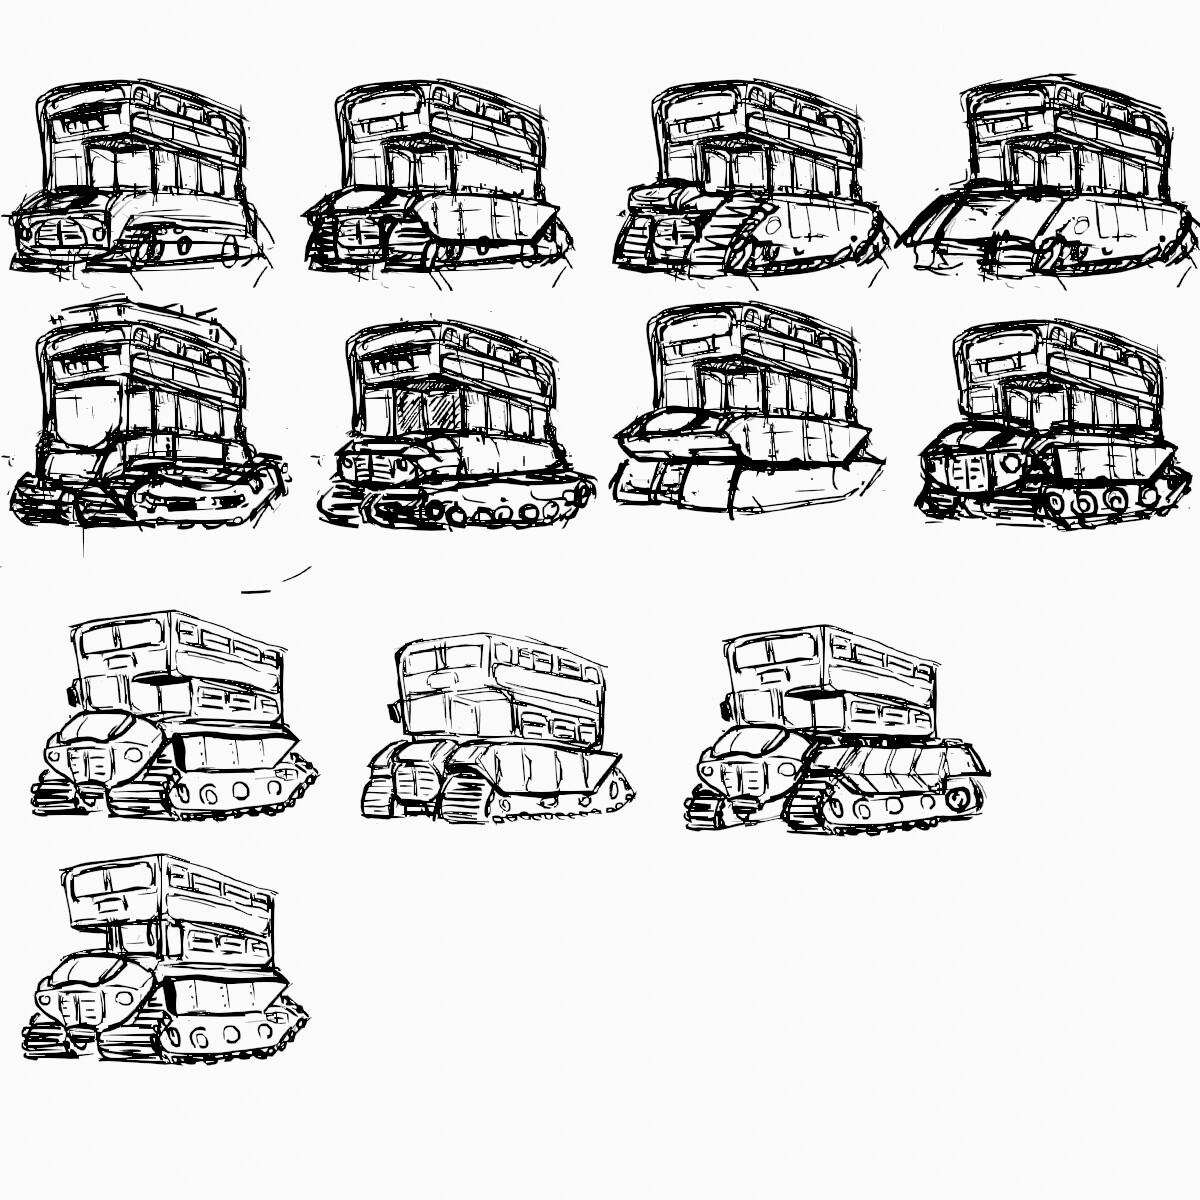 Bus tank sketches building up to final design.